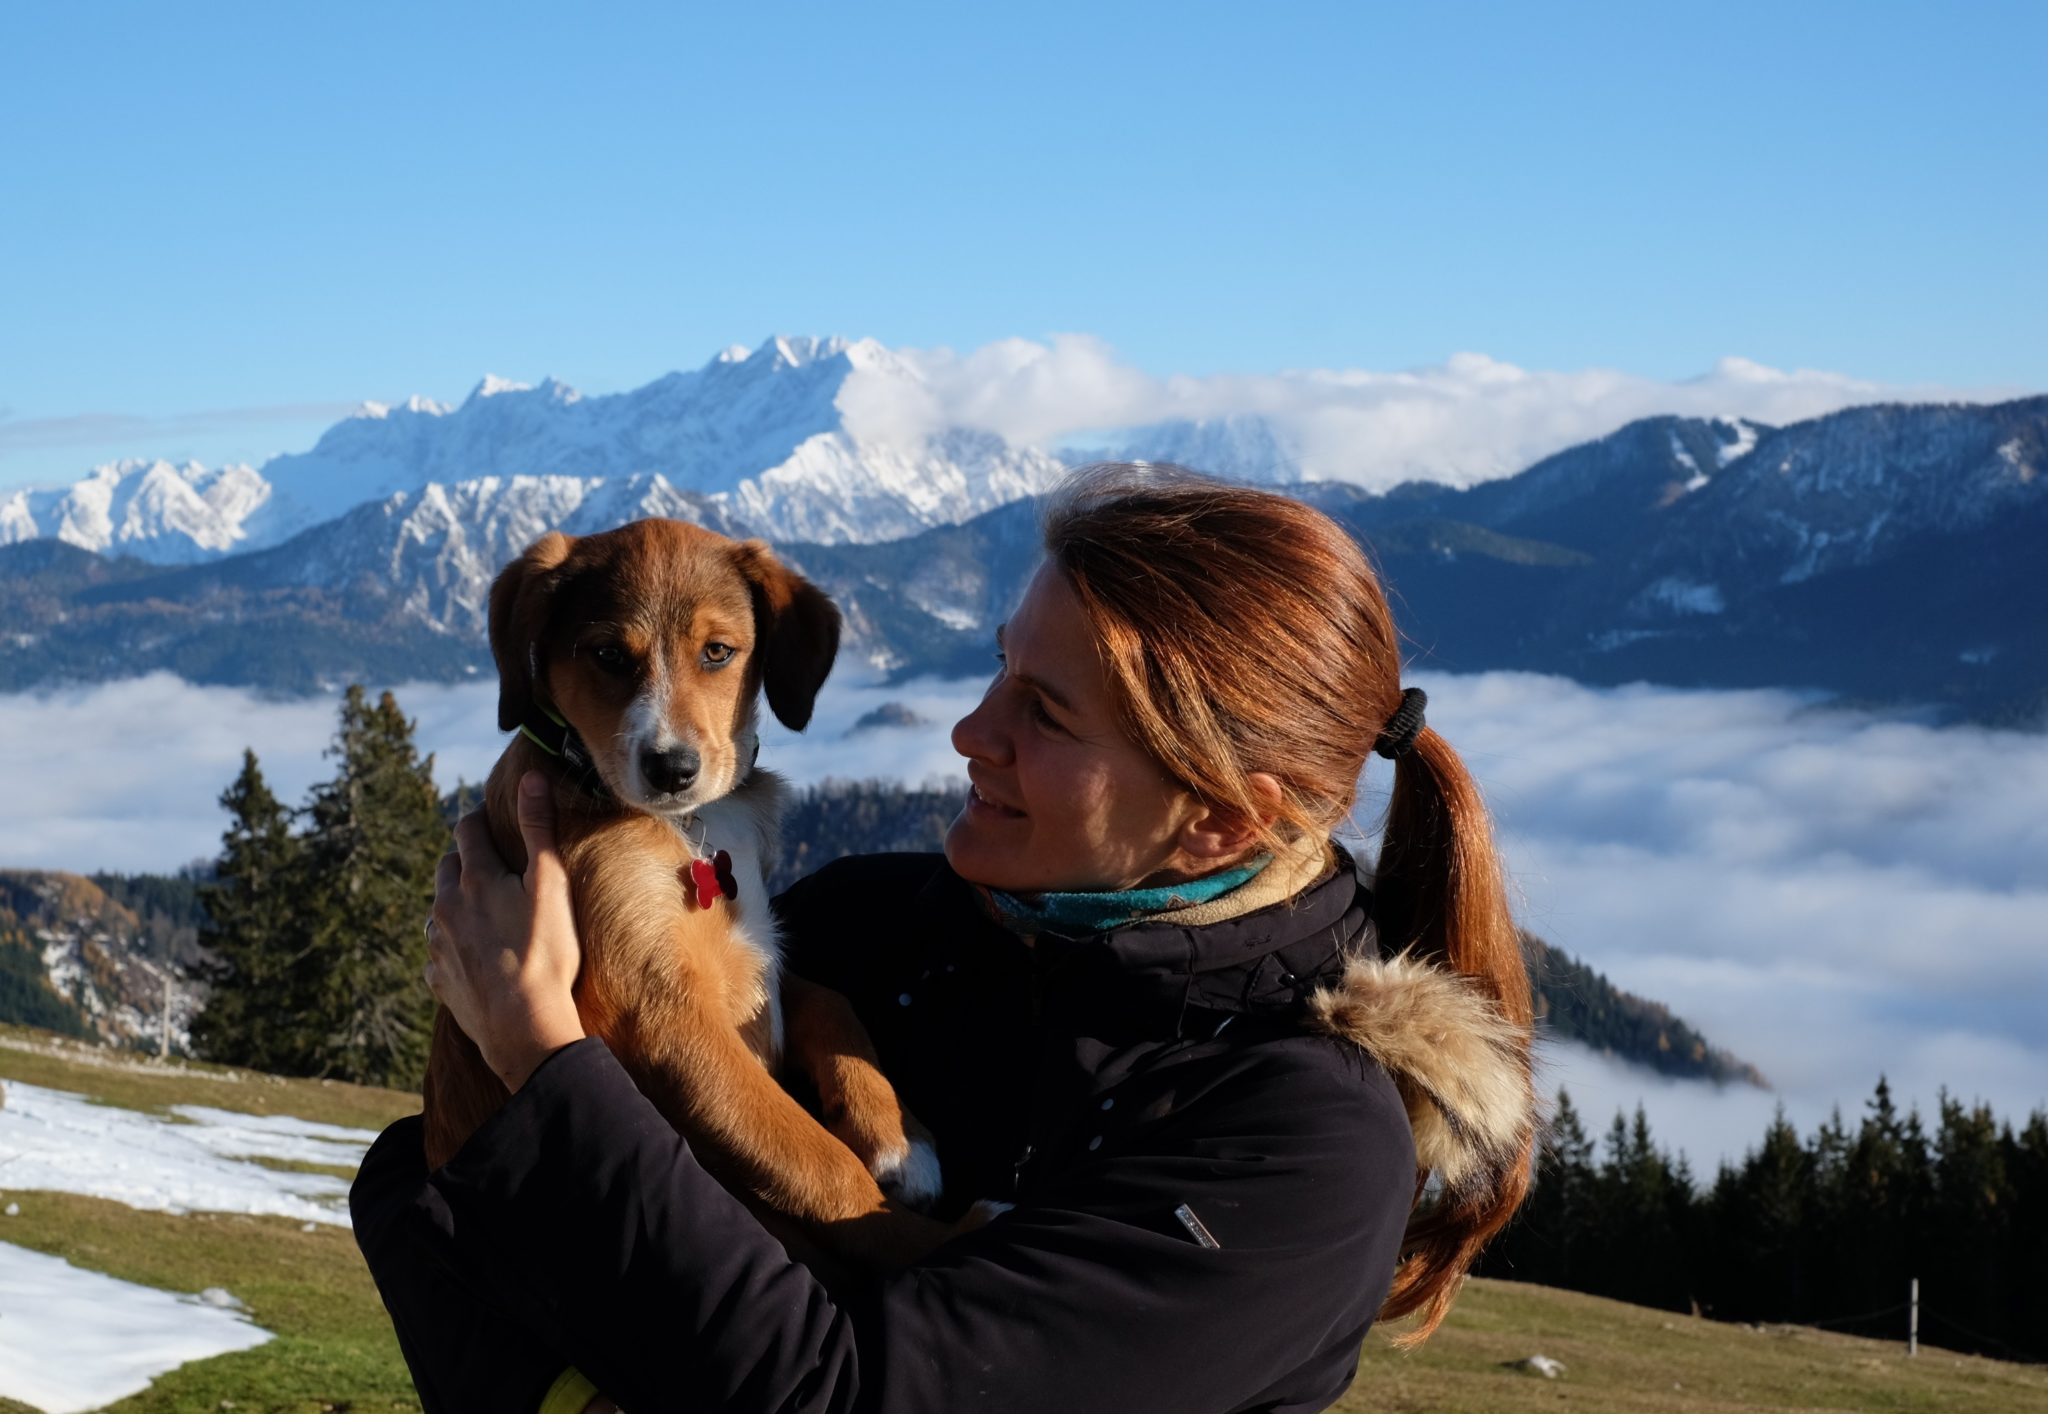 A puppy and a woman hiker in the mountains, Slovenia